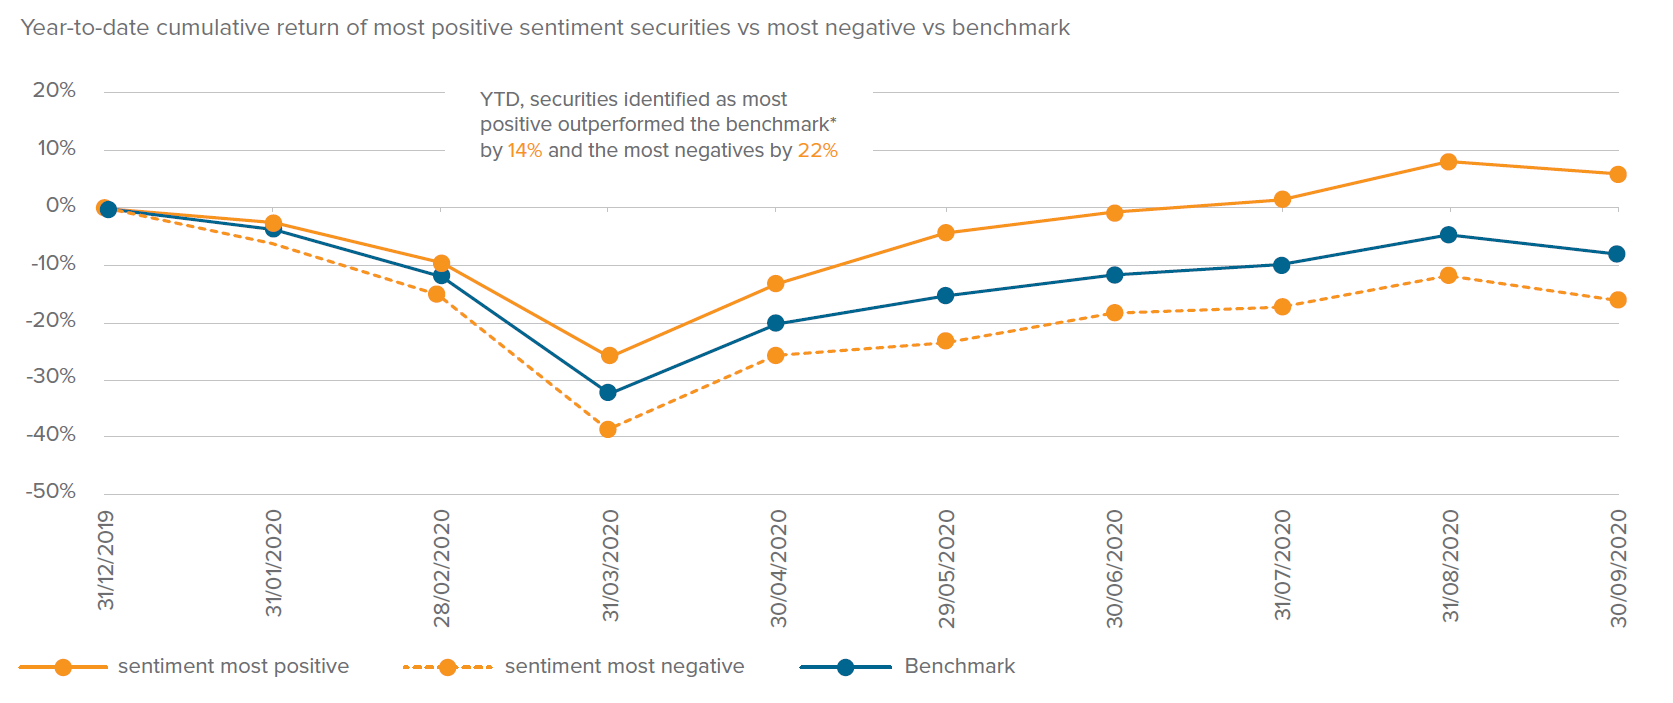 Year-to-date cumulative return of most positive sentiment securities vs most negative vs benchmark